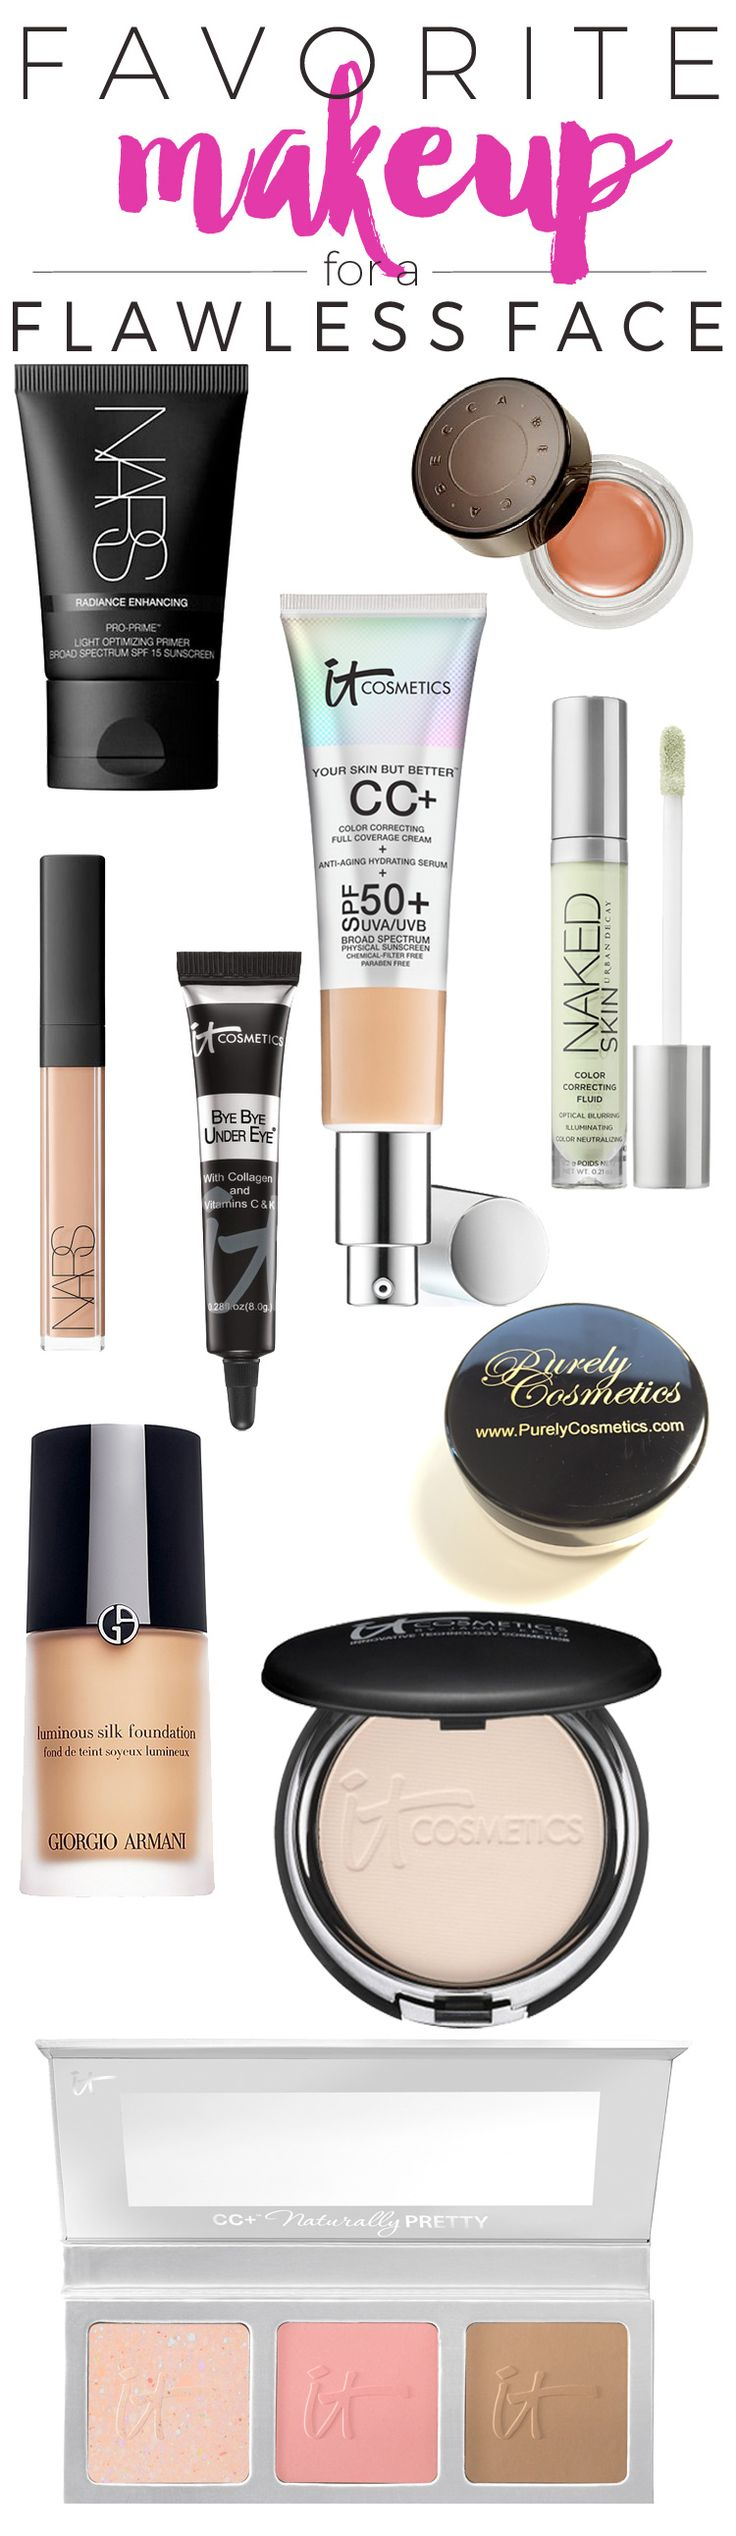 My 10 Favorite Makeup Products for a Flawless Face